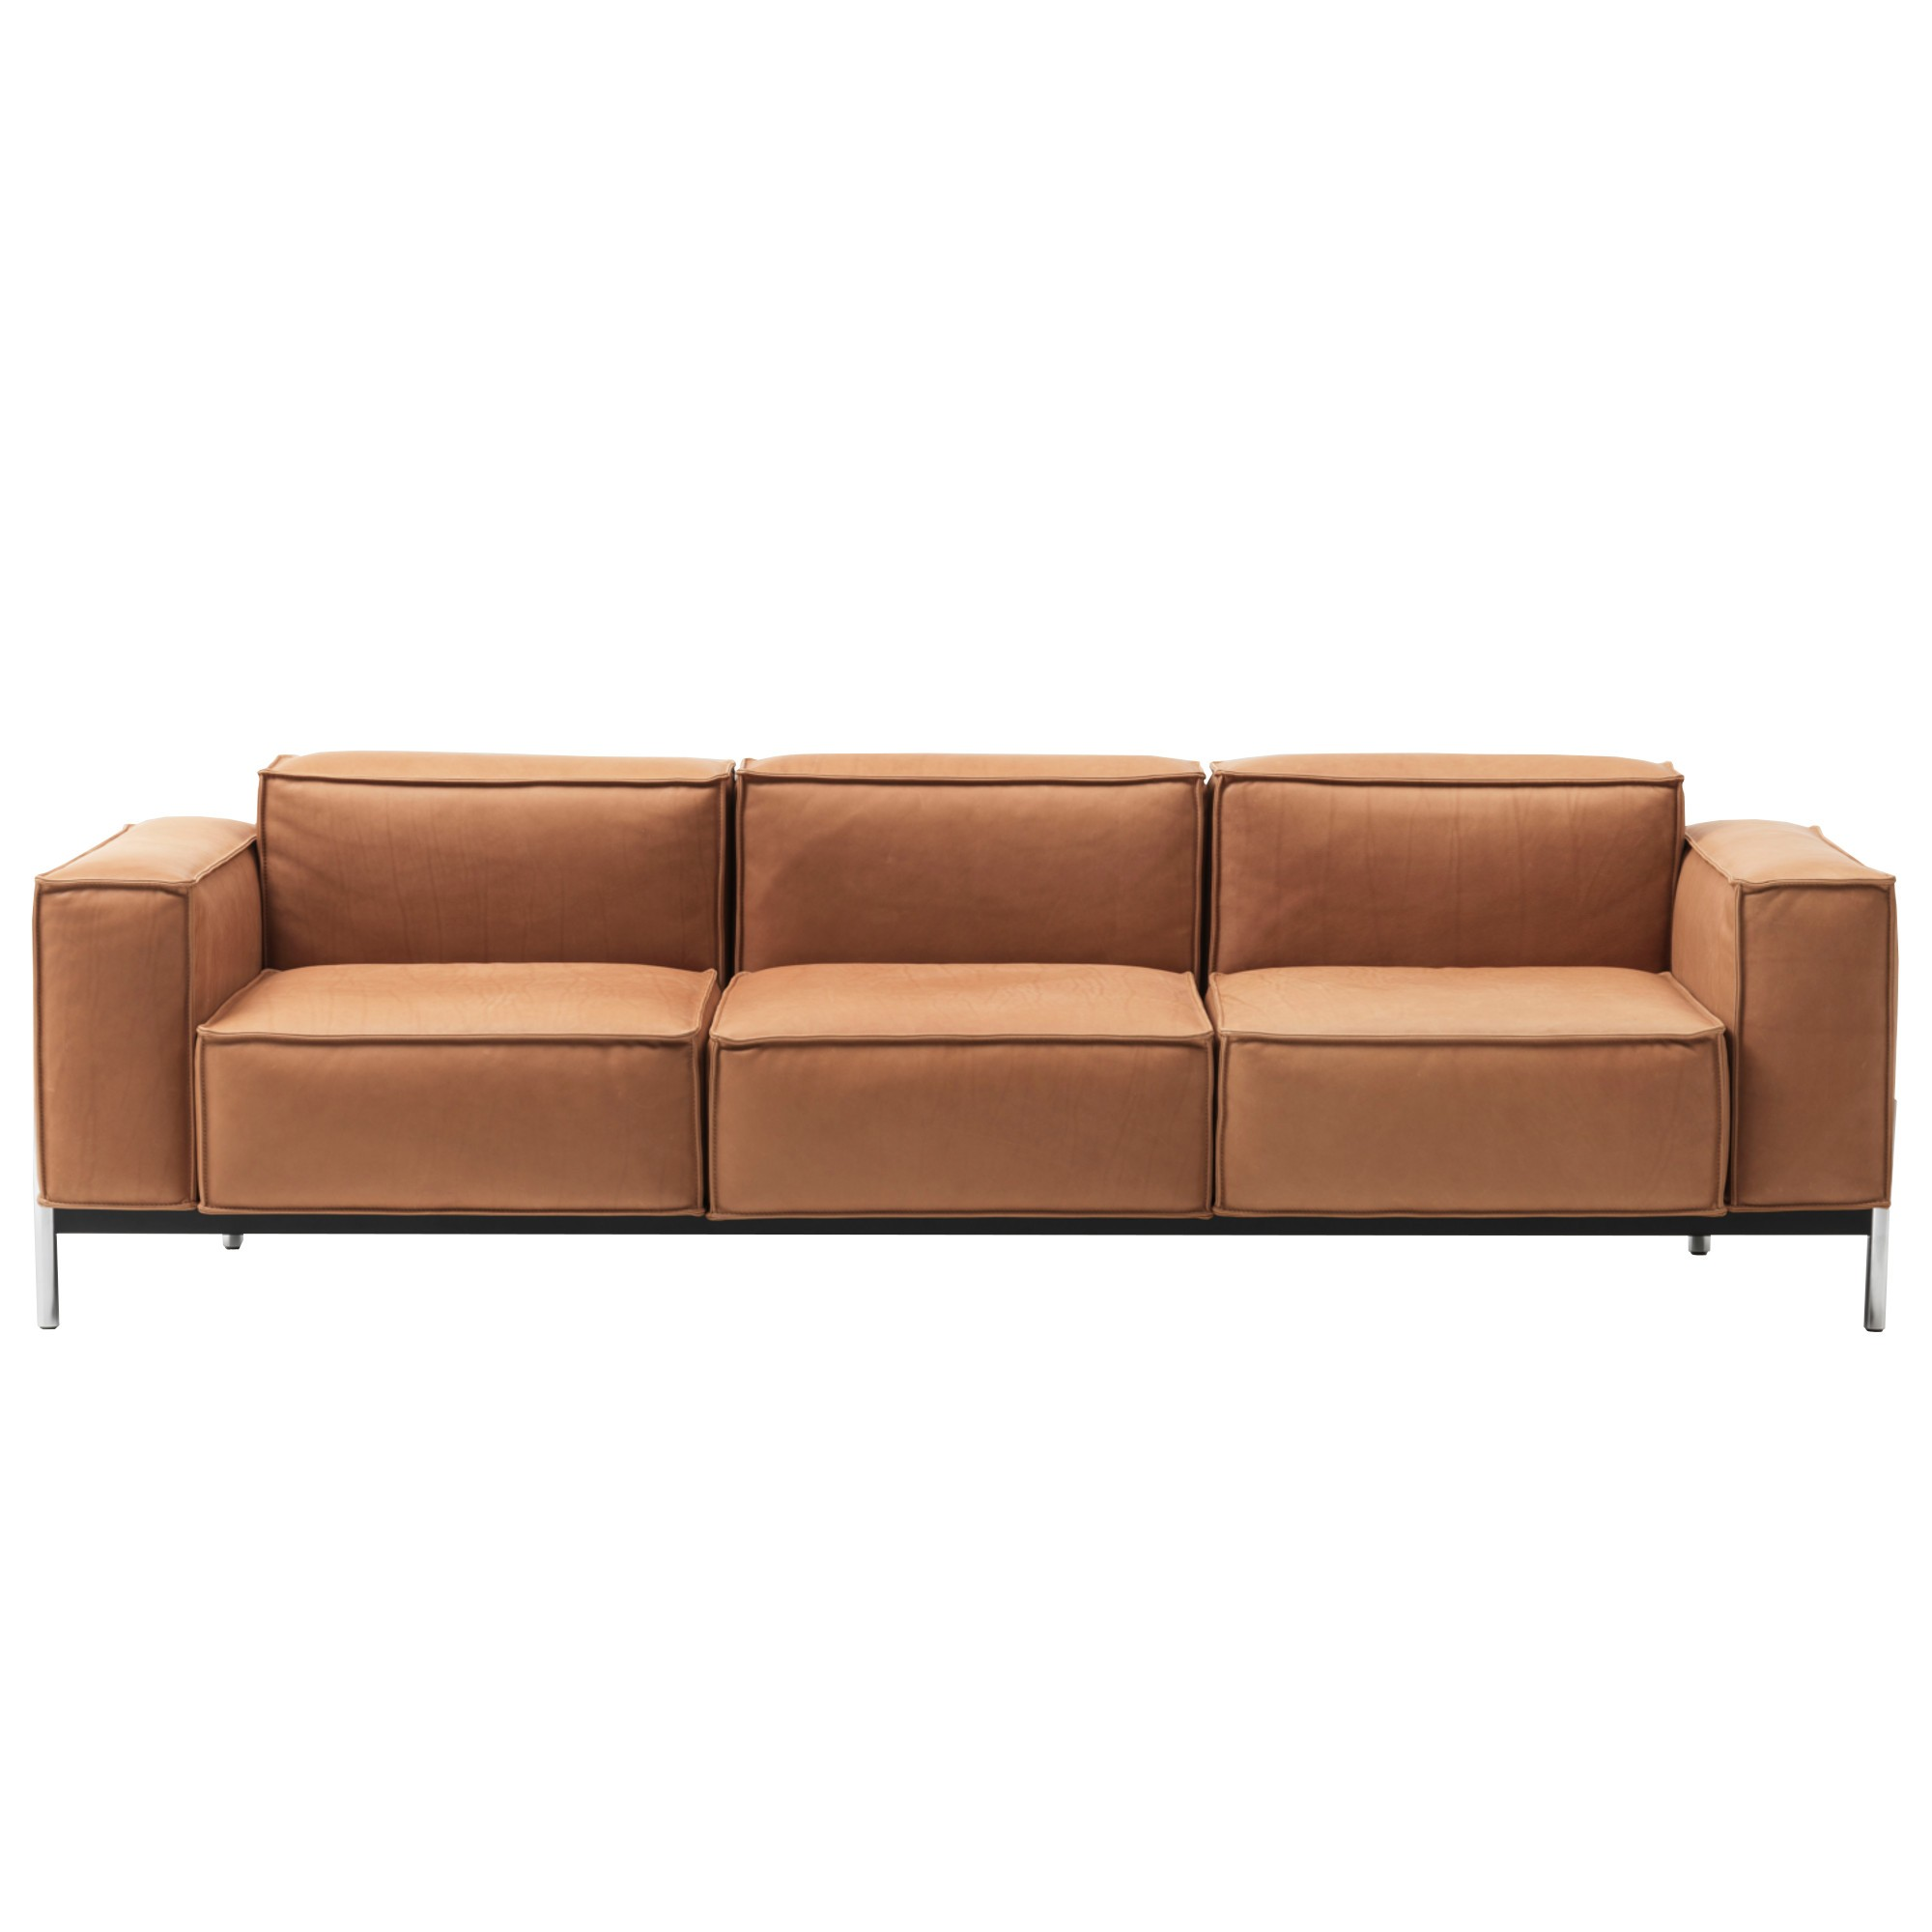 Ds 21 Sofa By De Sede